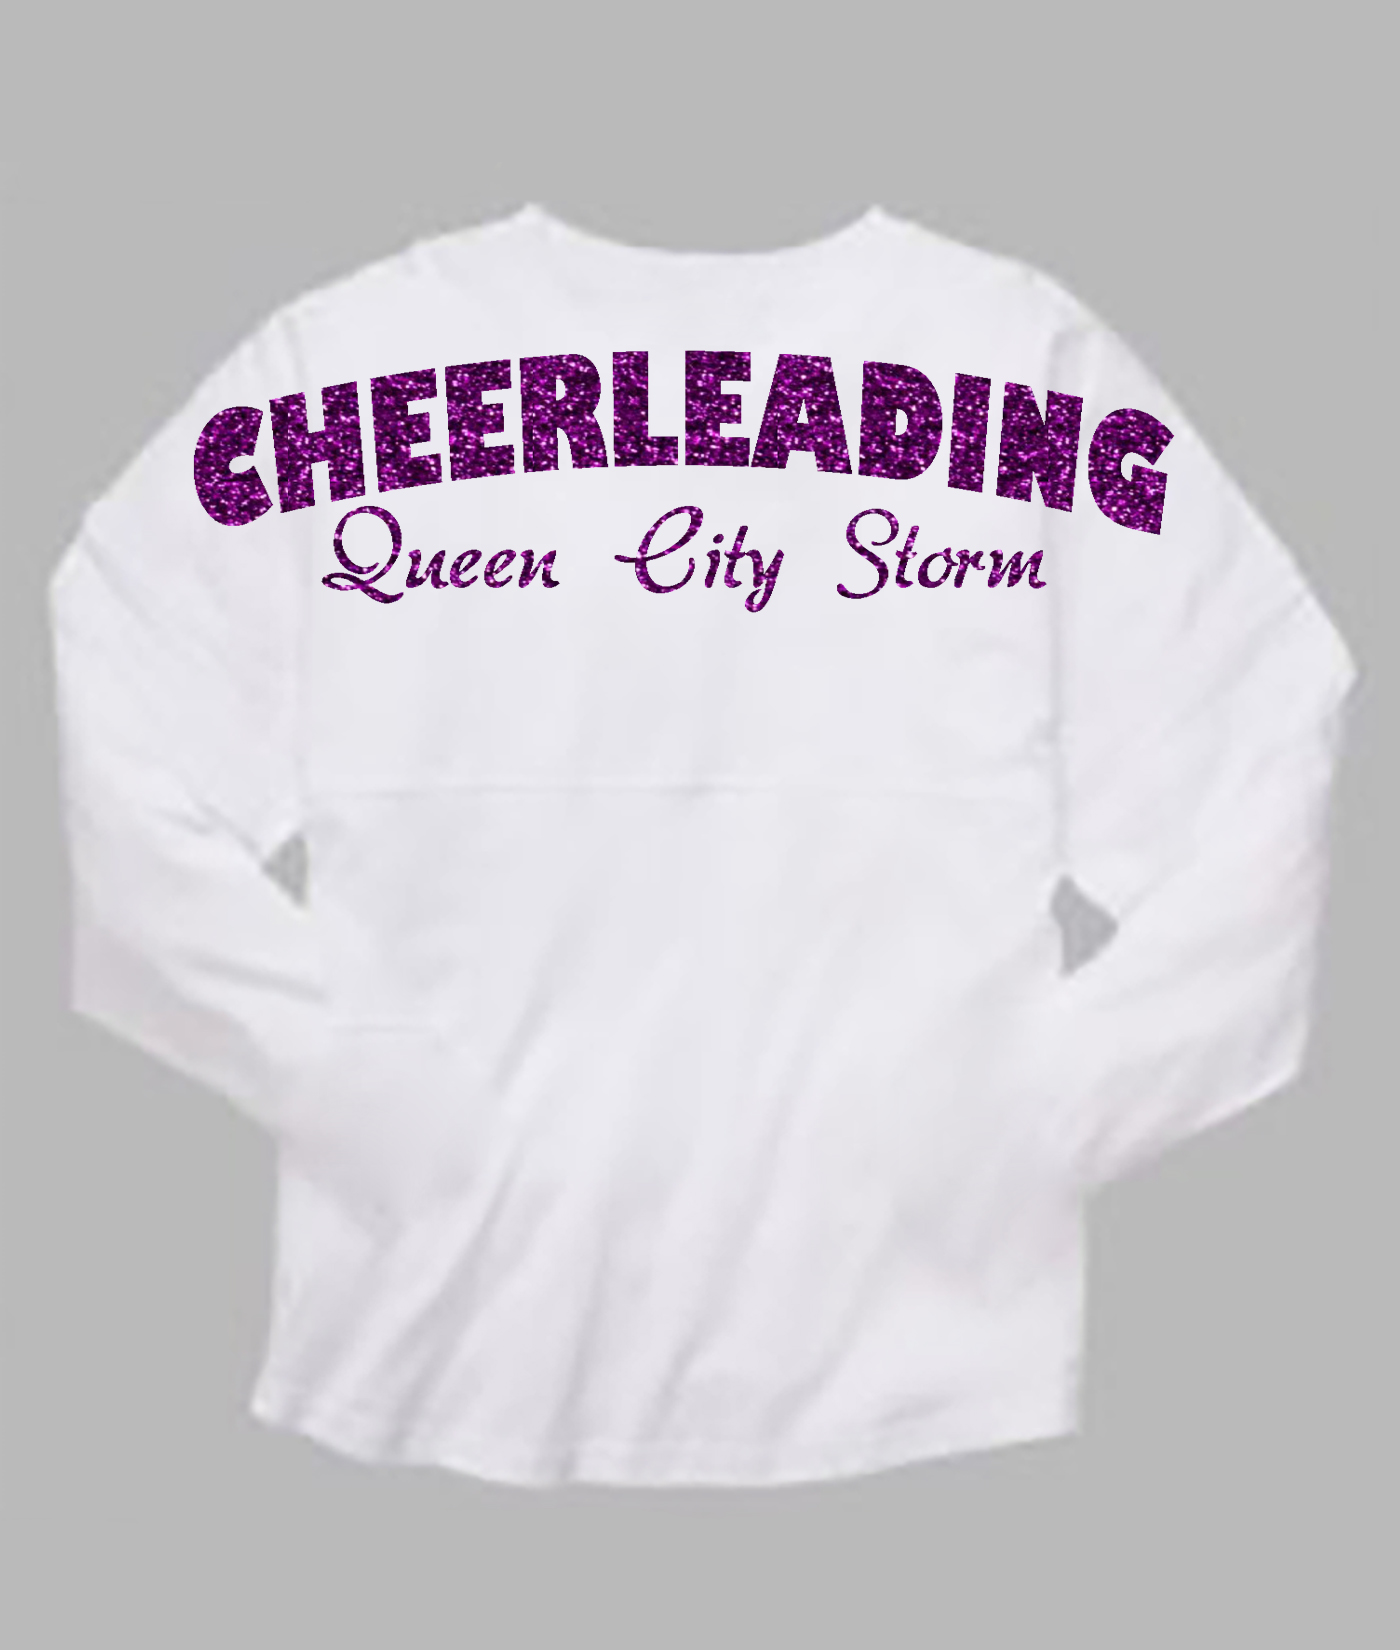 Cheerleading Queen City Storm White Pom Pom Jersey with Purple Glitter